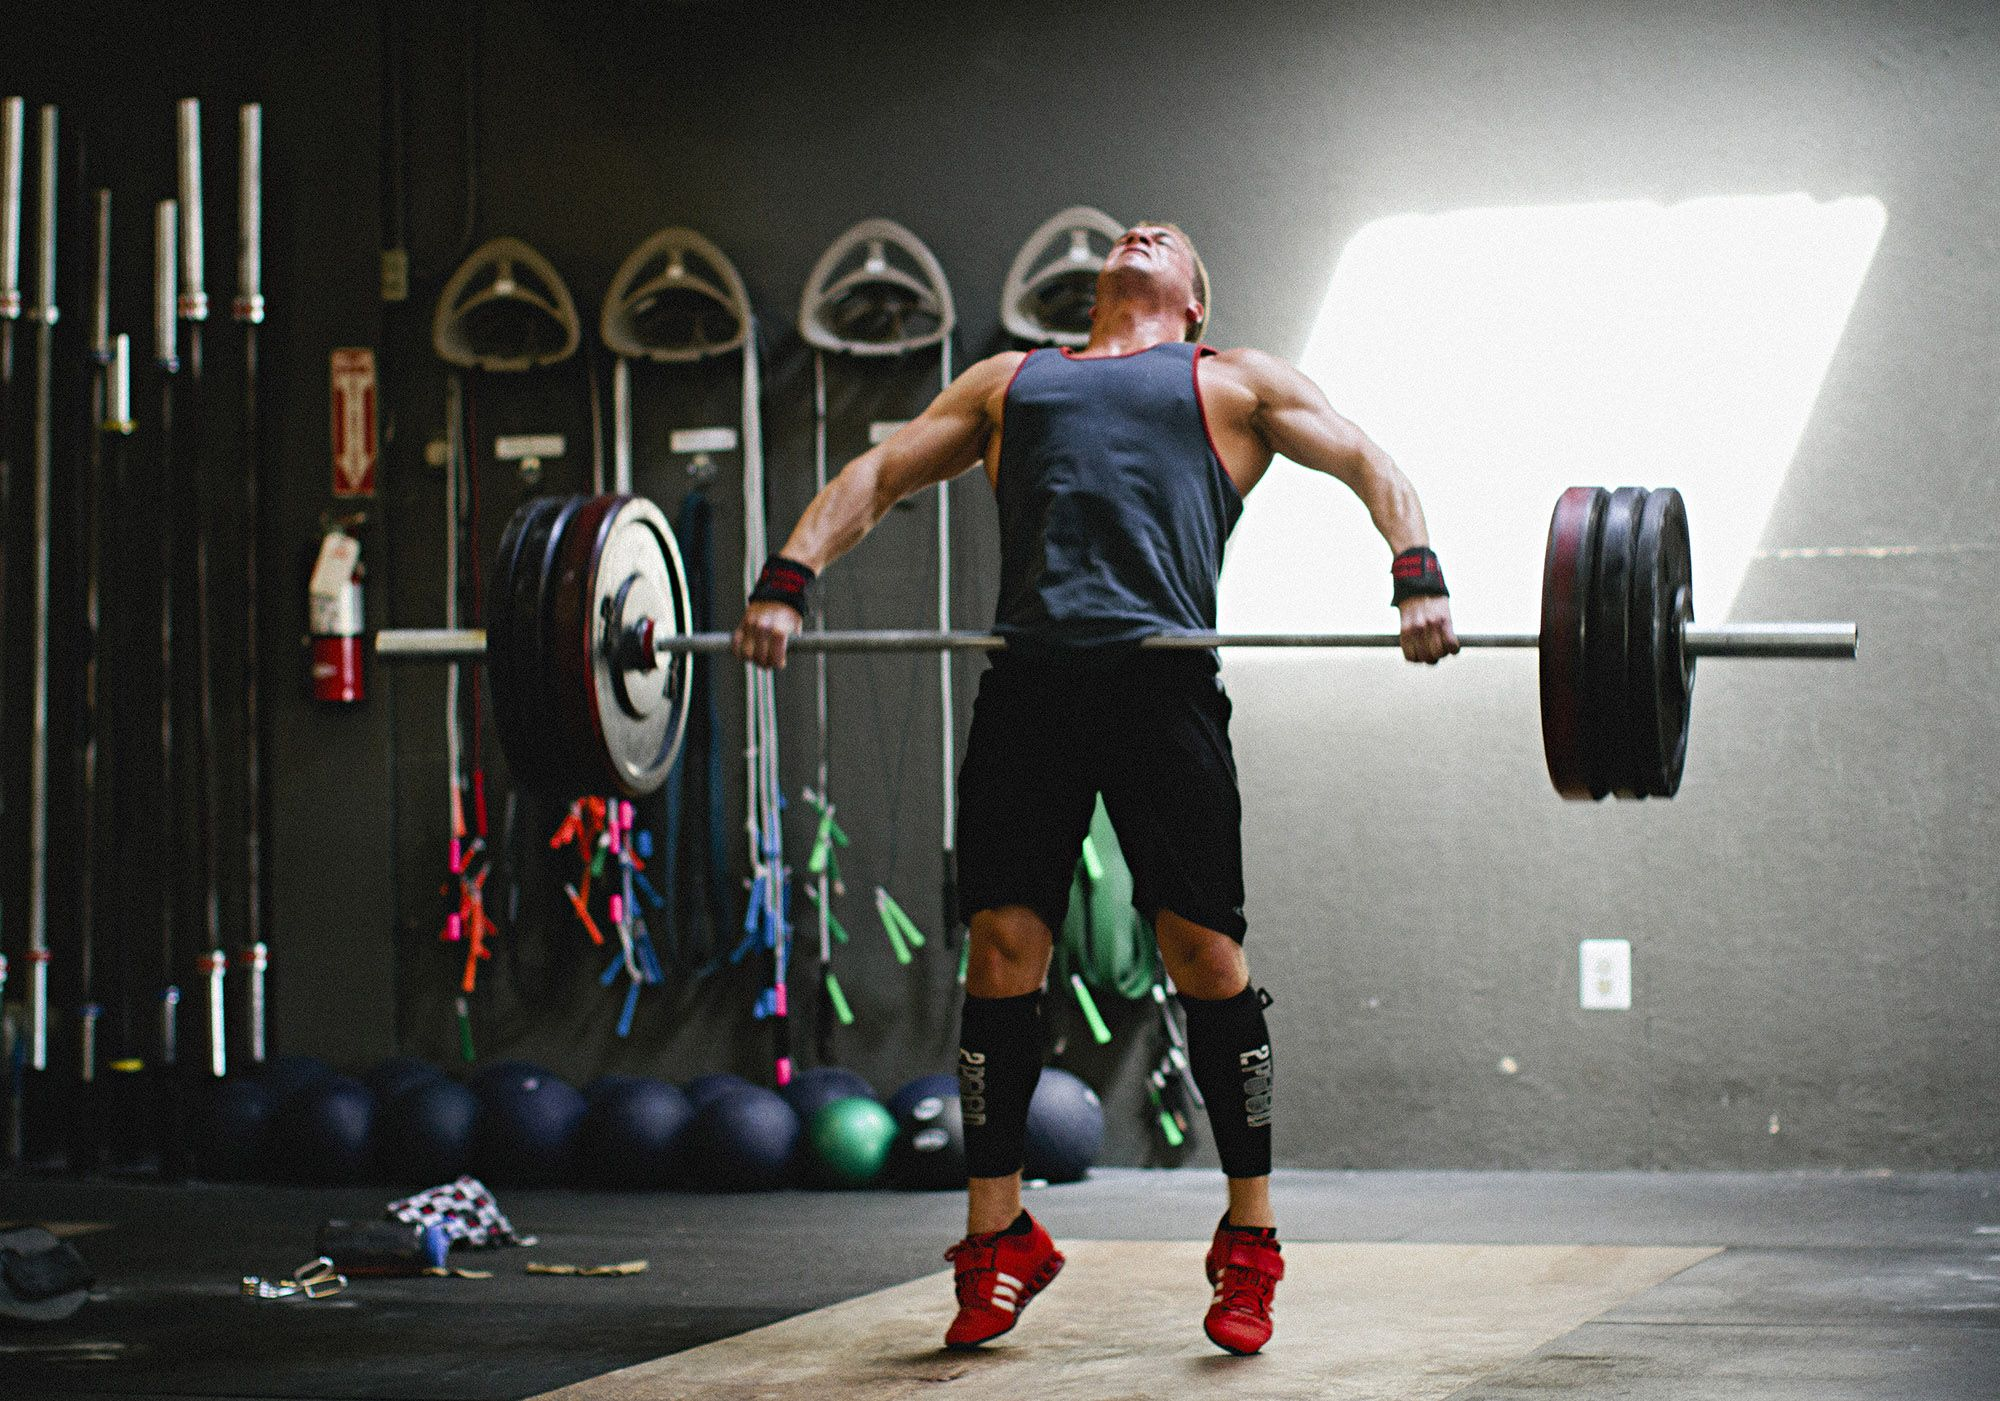 Snatch crossfit motivation one of the coolest